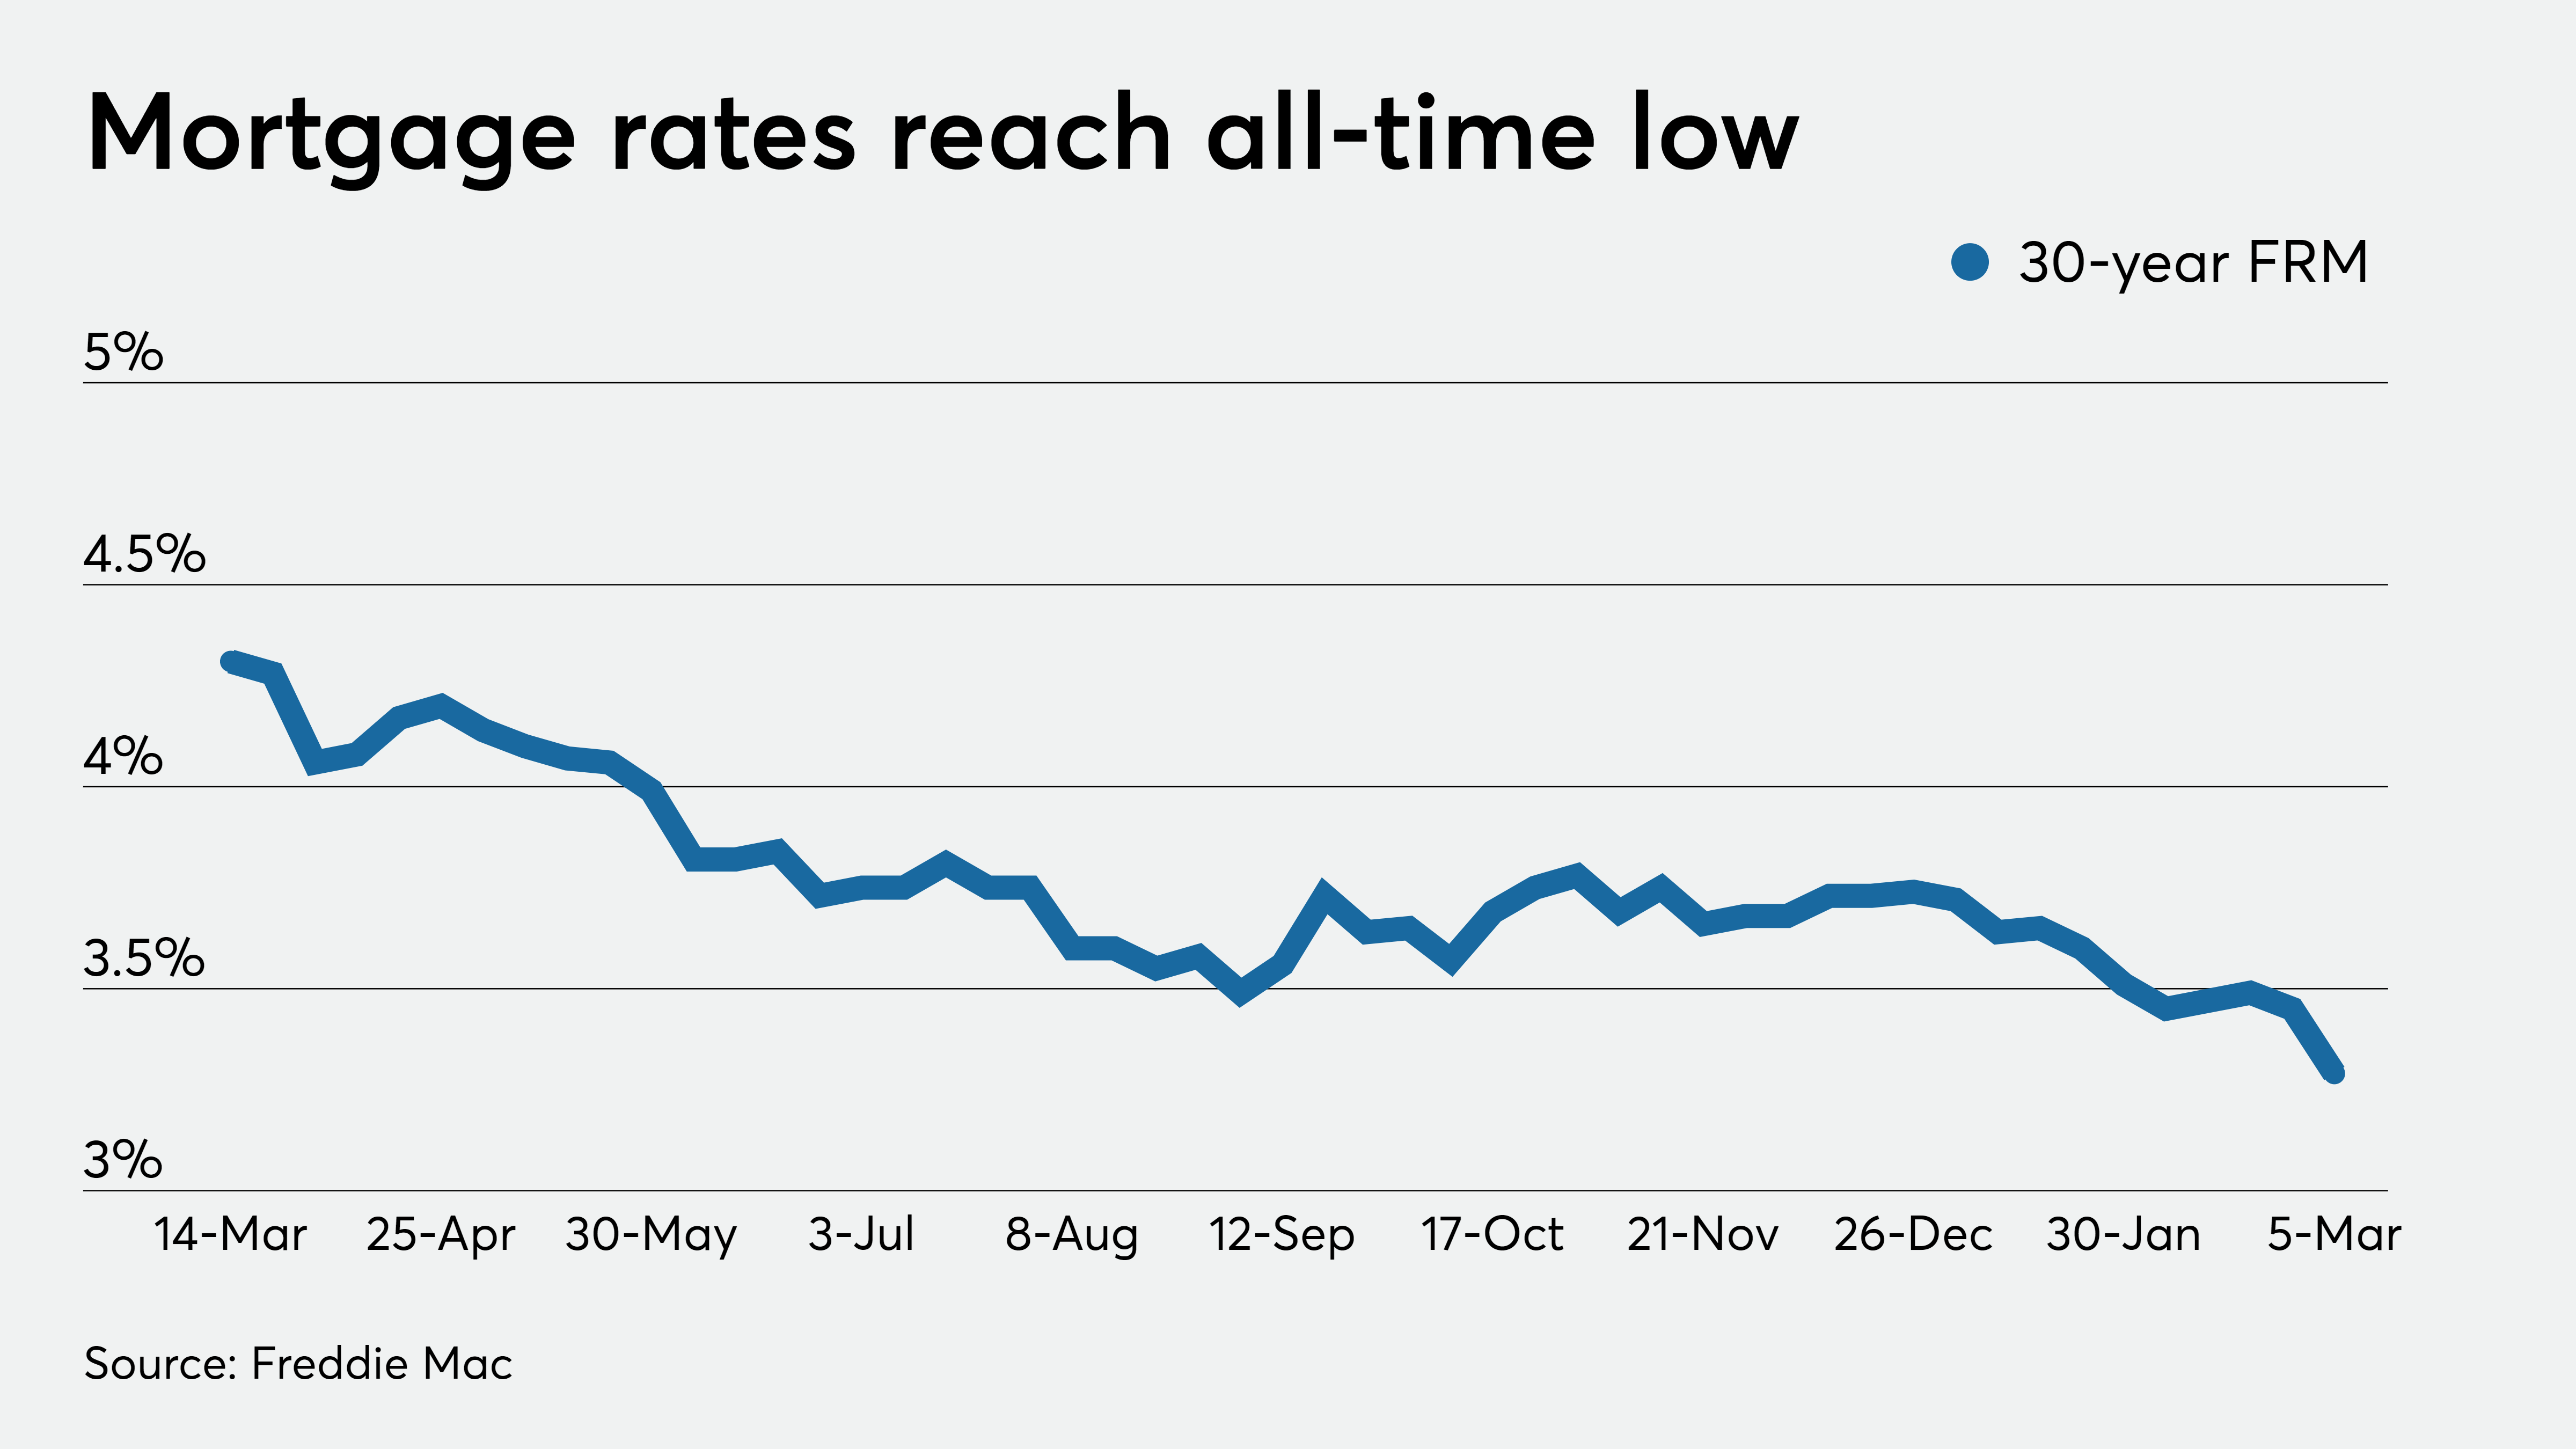 Mortgage rate hits record low